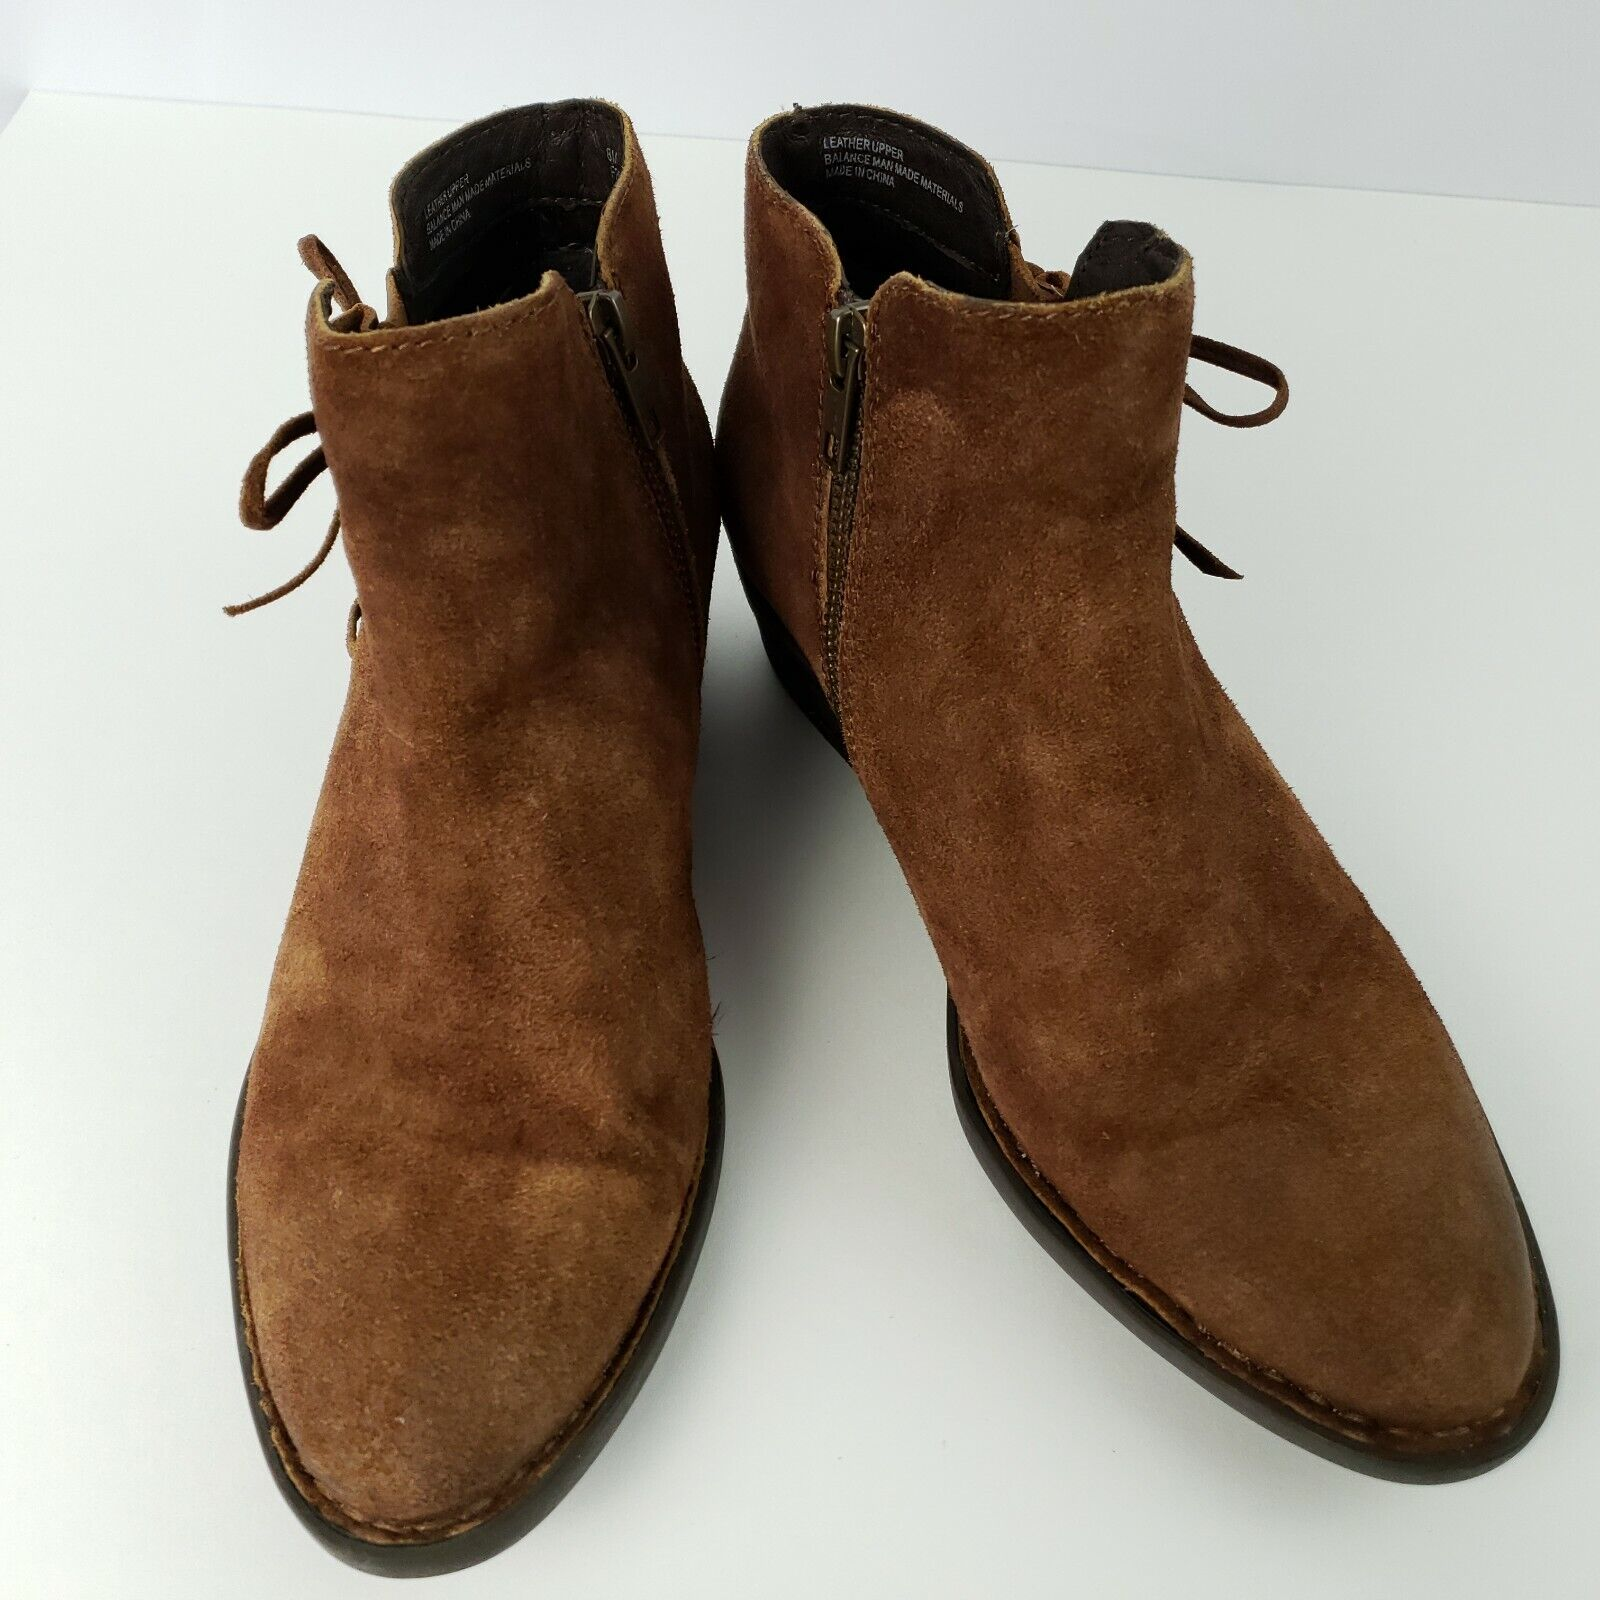 Born Bowlen Ankle Boots shoes 8M Burnished Suede Leather Zip Open Faux Ties